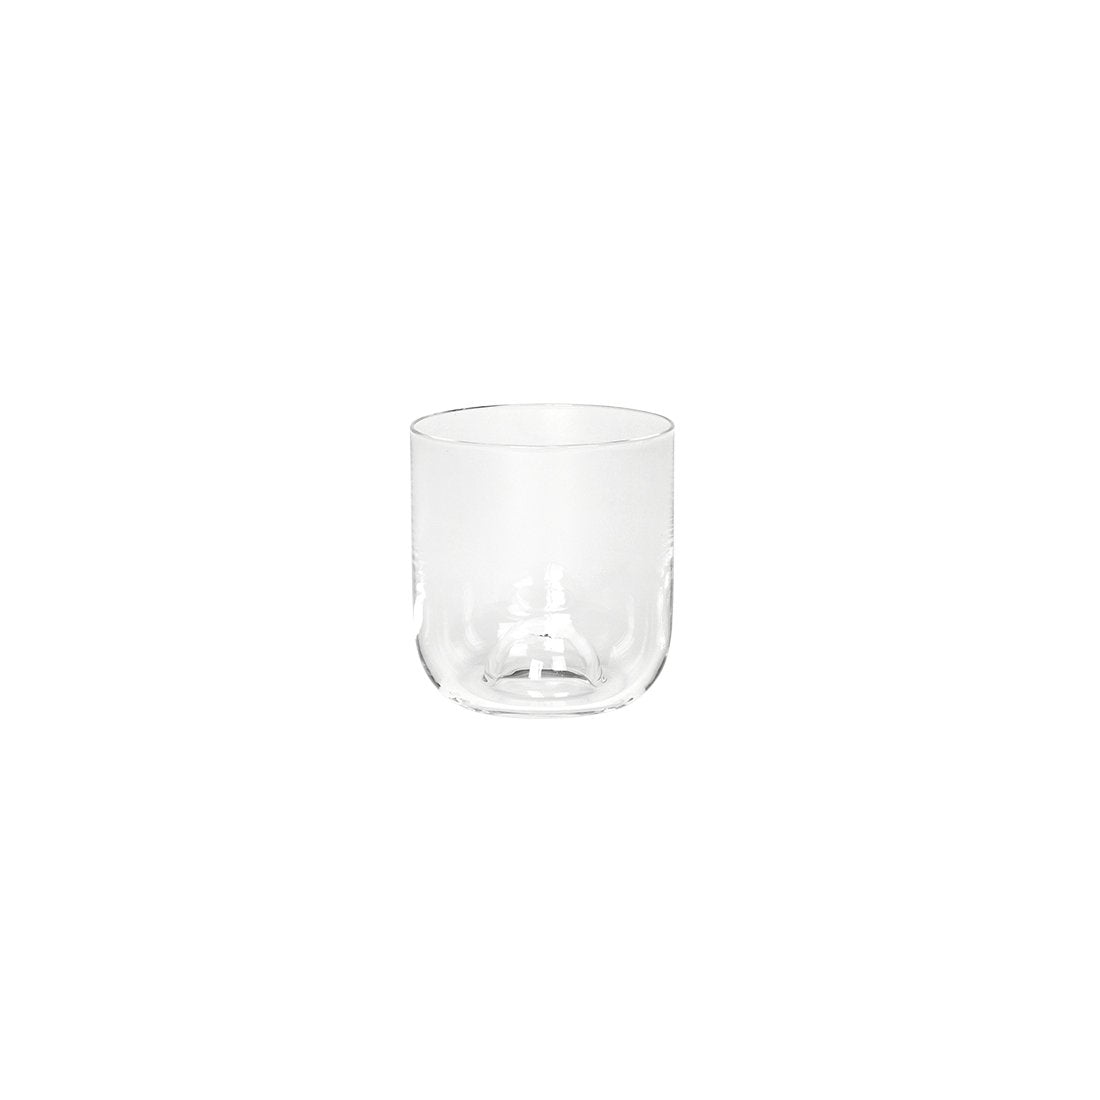 GLAS – Capsule Drinking Glass | Small Tumblers 4pcs KRISITINA DAM